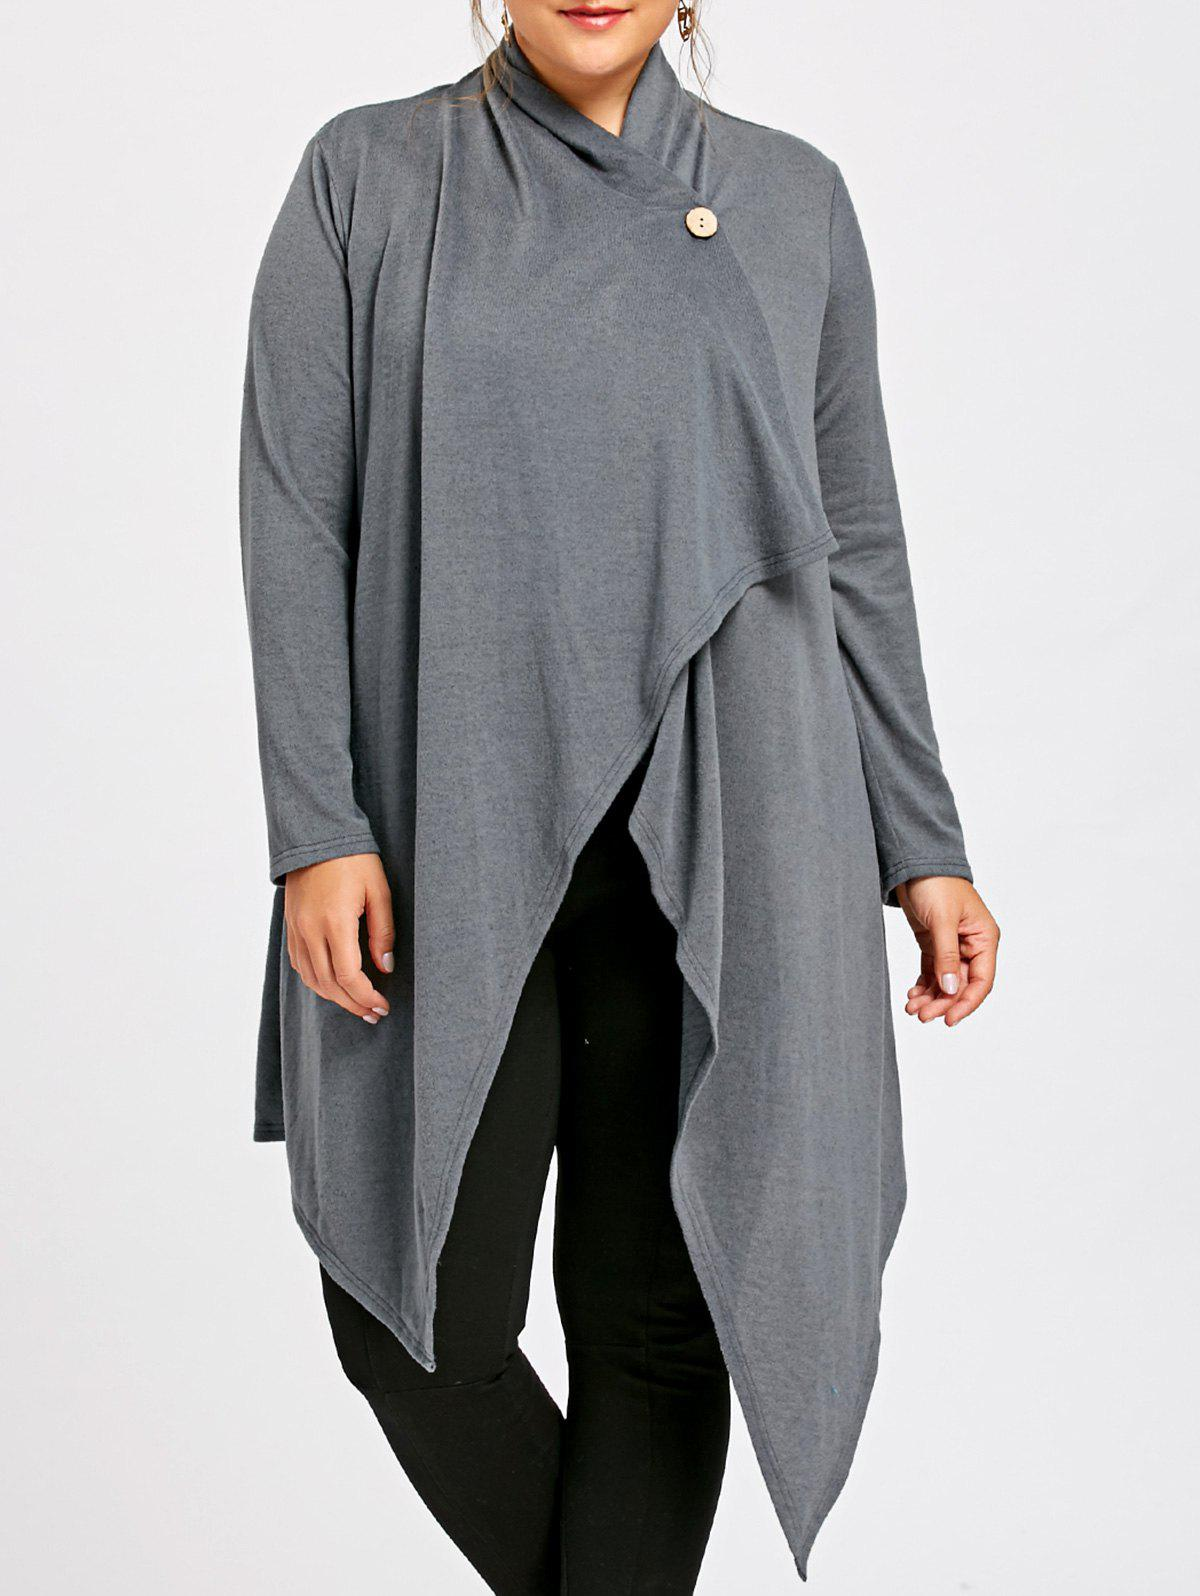 Plus Size One Button Asymmetrical Tunic CardiganWOMEN<br><br>Size: 5XL; Color: GRAY; Type: Cardigans; Material: Polyester; Sleeve Length: Full; Collar: Collarless; Style: Casual; Season: Fall,Spring; Pattern Type: Solid; Weight: 0.4500kg; Package Contents: 1 x Cardigan;